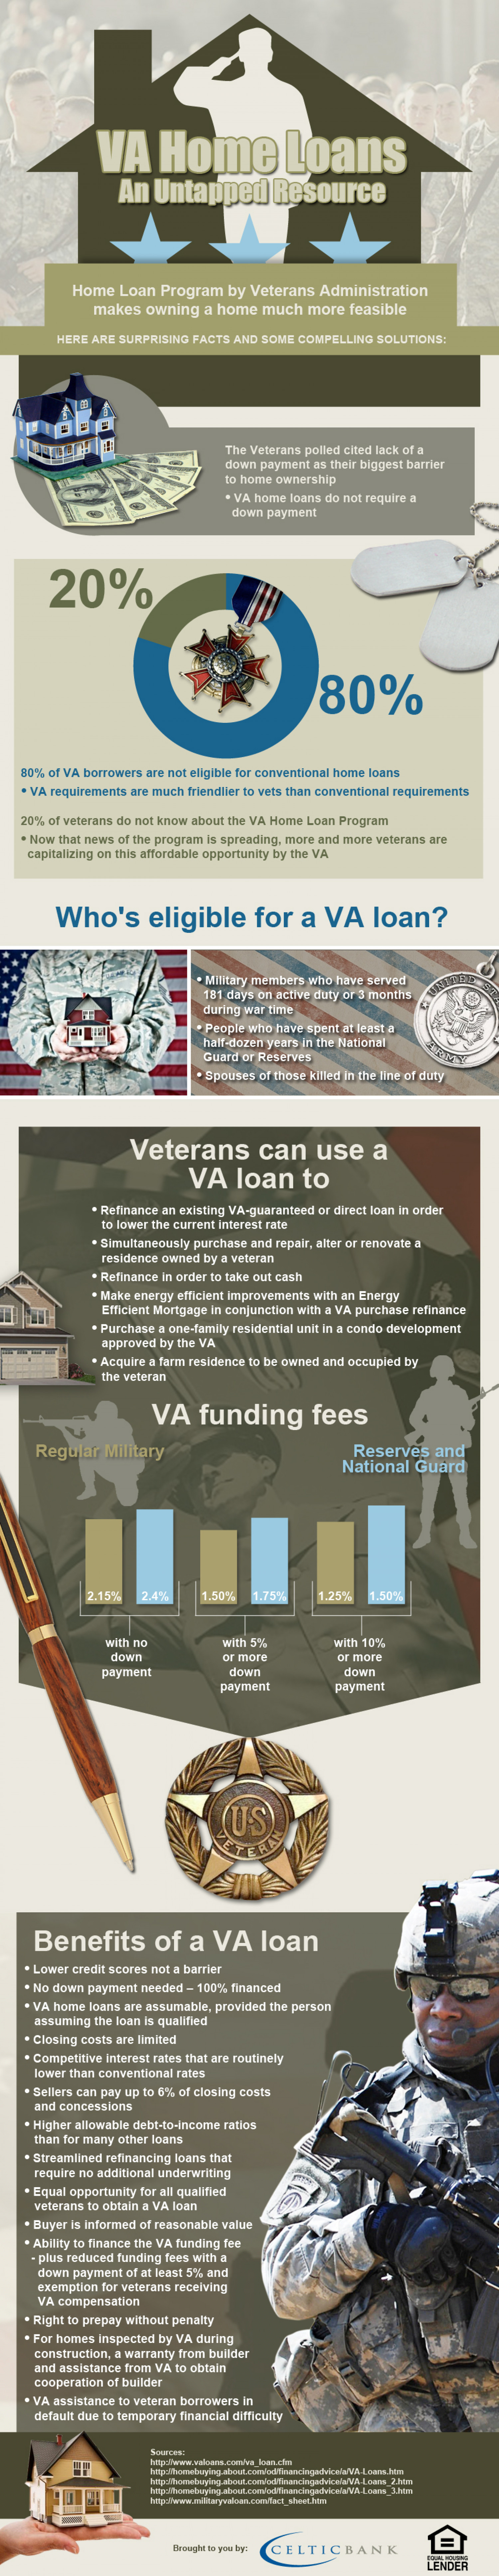 VA Home Loans An Untapped Resource Infographic